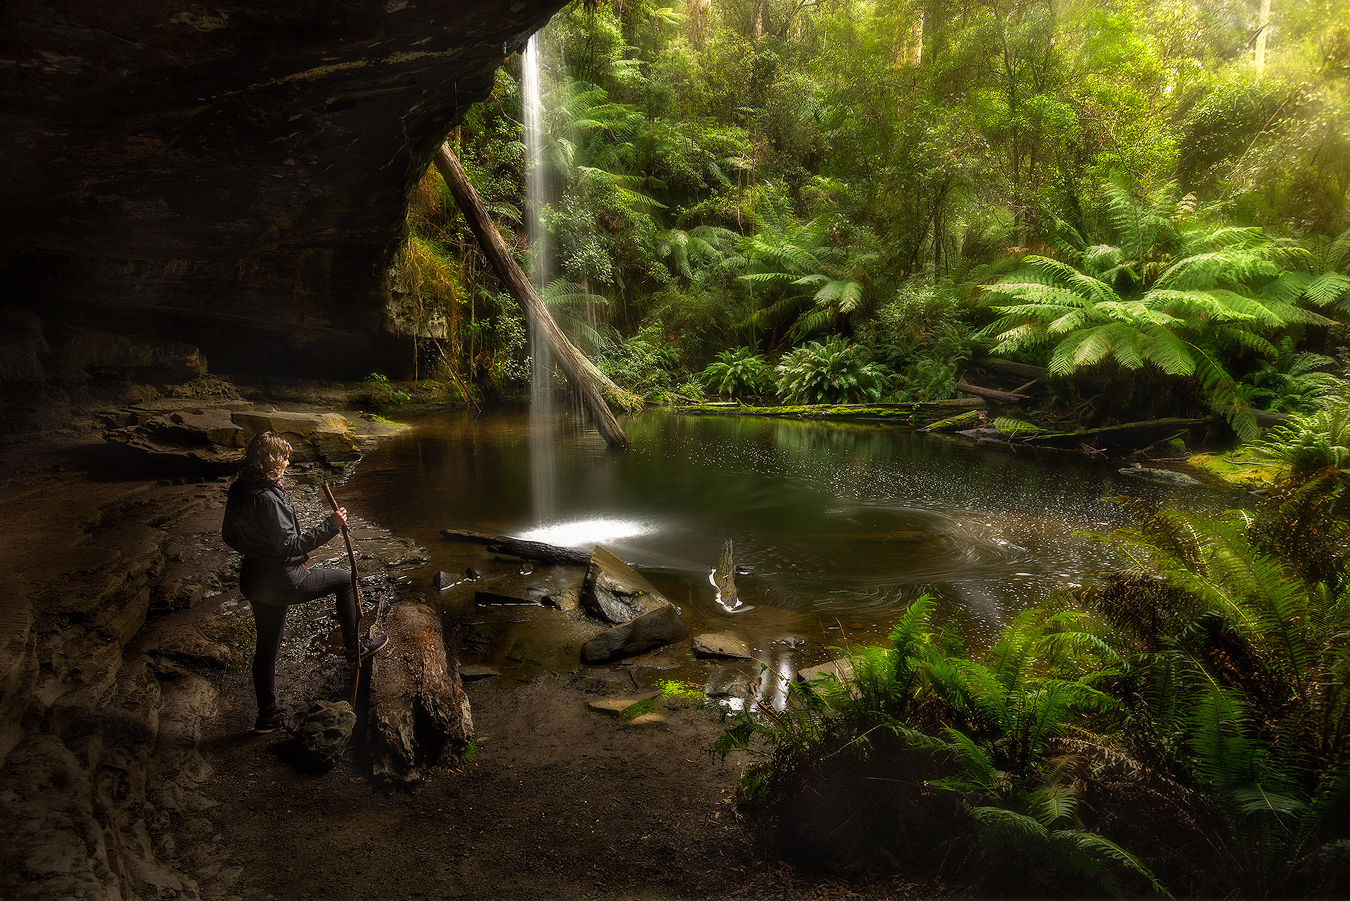 We Are Going On An Adventure - Lower Kalimna Falls, Lorne, Great Ocean Road, Australia   Holiday with We Are Raw Photography Tours